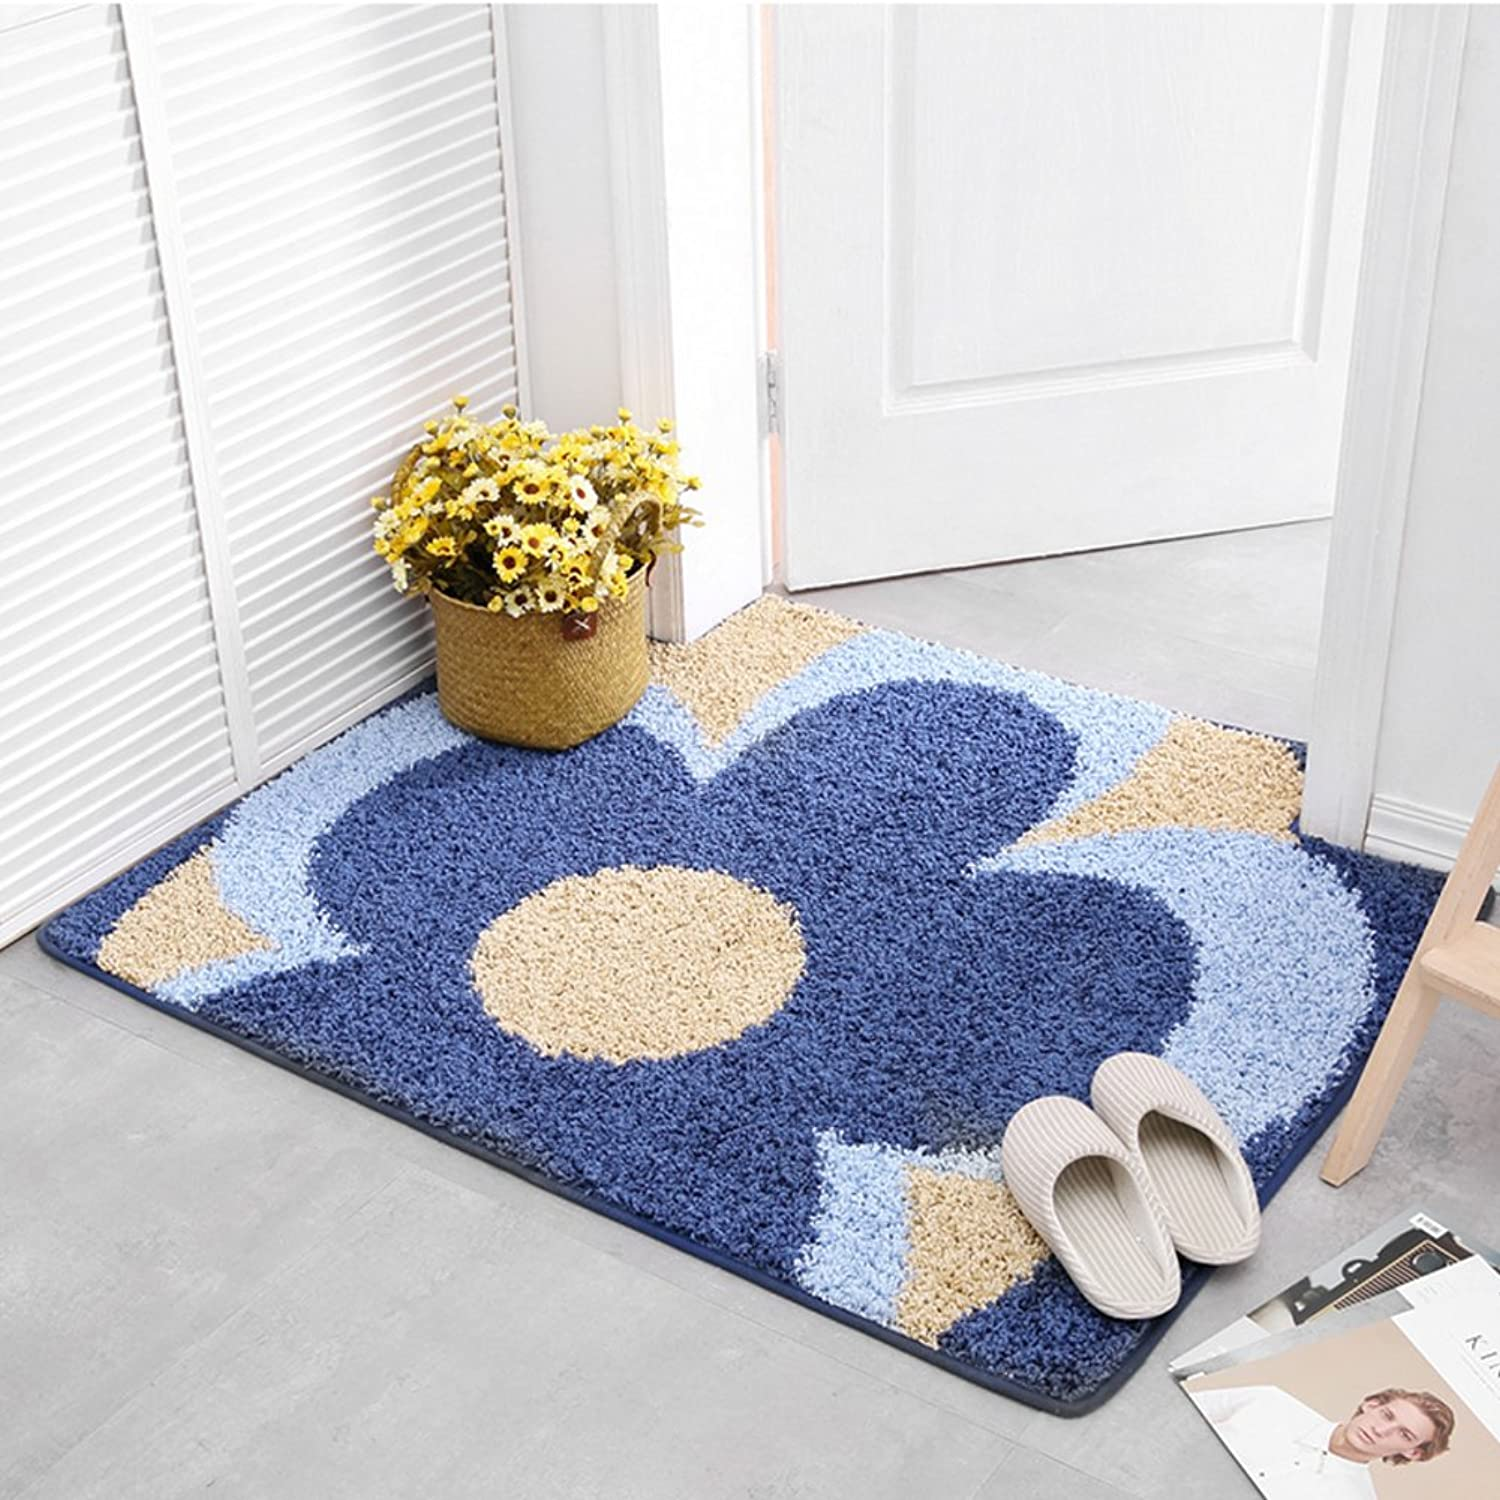 GUOSHIJITUAN Anti Slip Modern Carpet,Carpet Doormat Foot Pad for Bedroom Living Room Bathroom Area Rug-B 90x140cm(35x55inch)